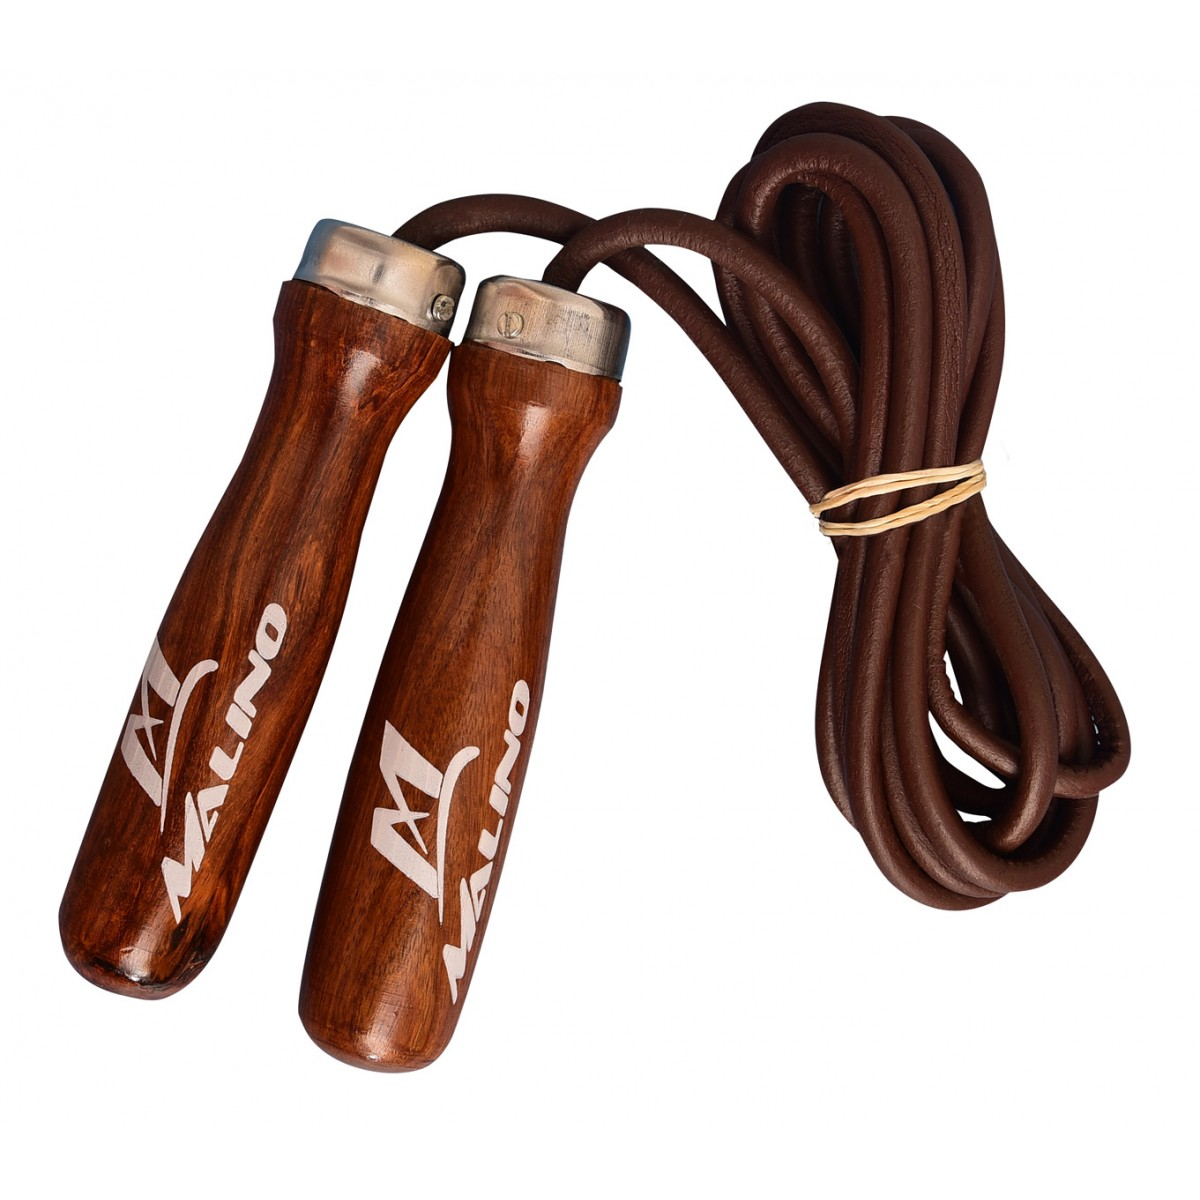 Malino Leather Skipping Ropes